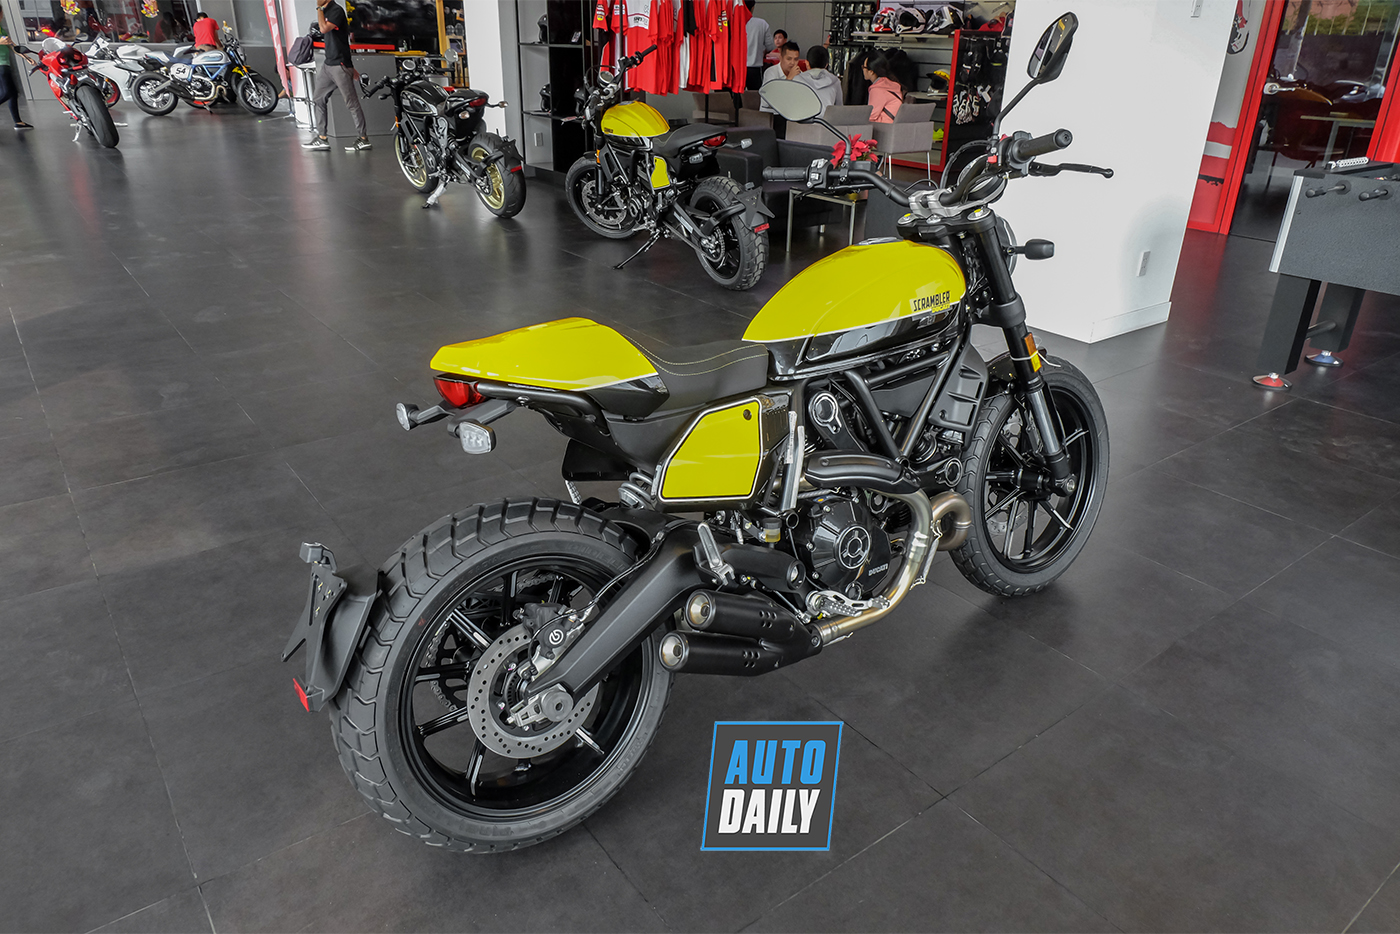 ducati-scrambler-full-throttle-2019-11.jpg